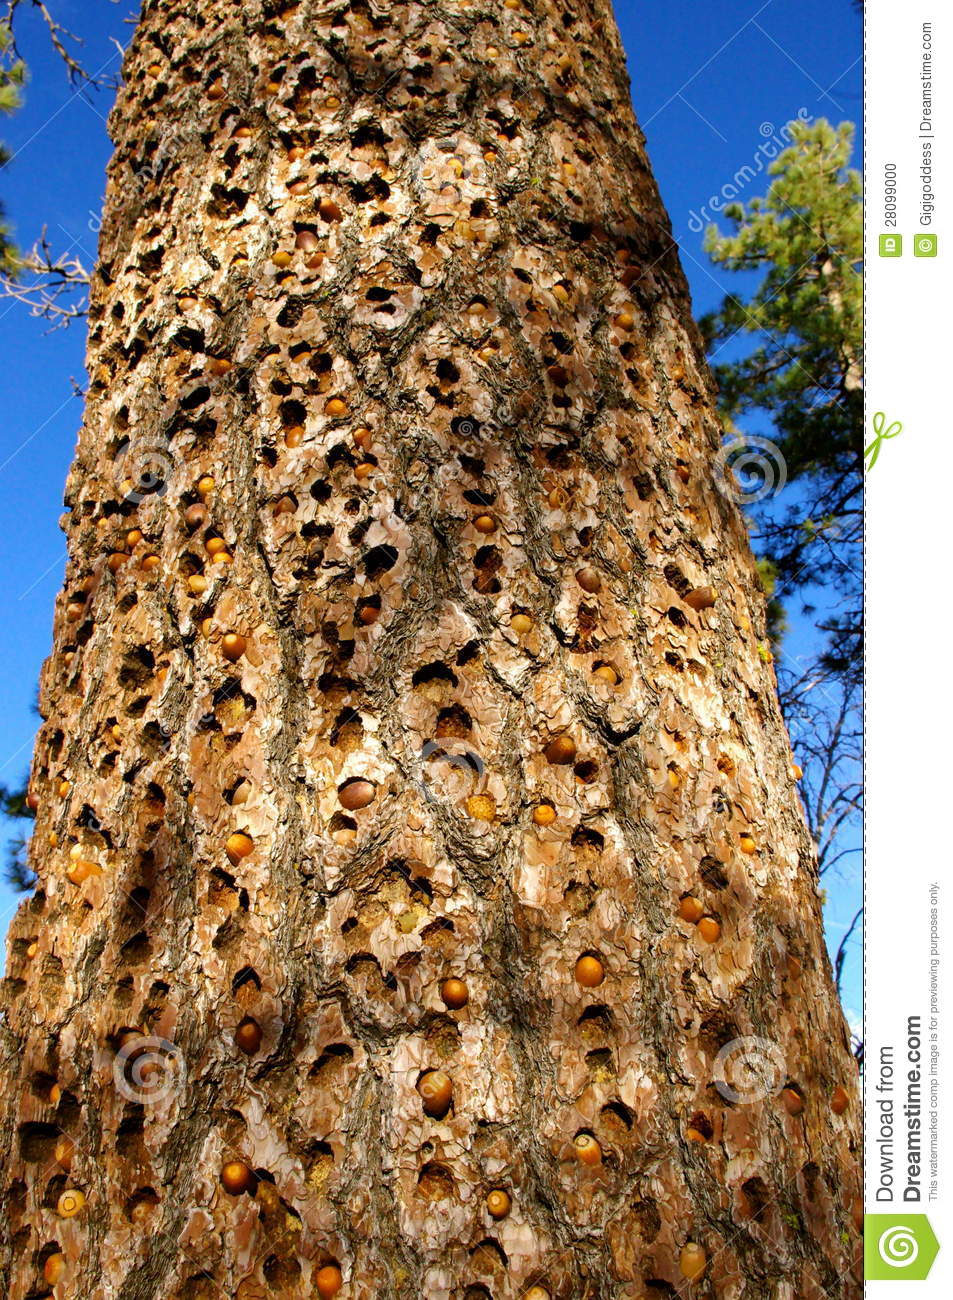 Tree Trunk with Hole